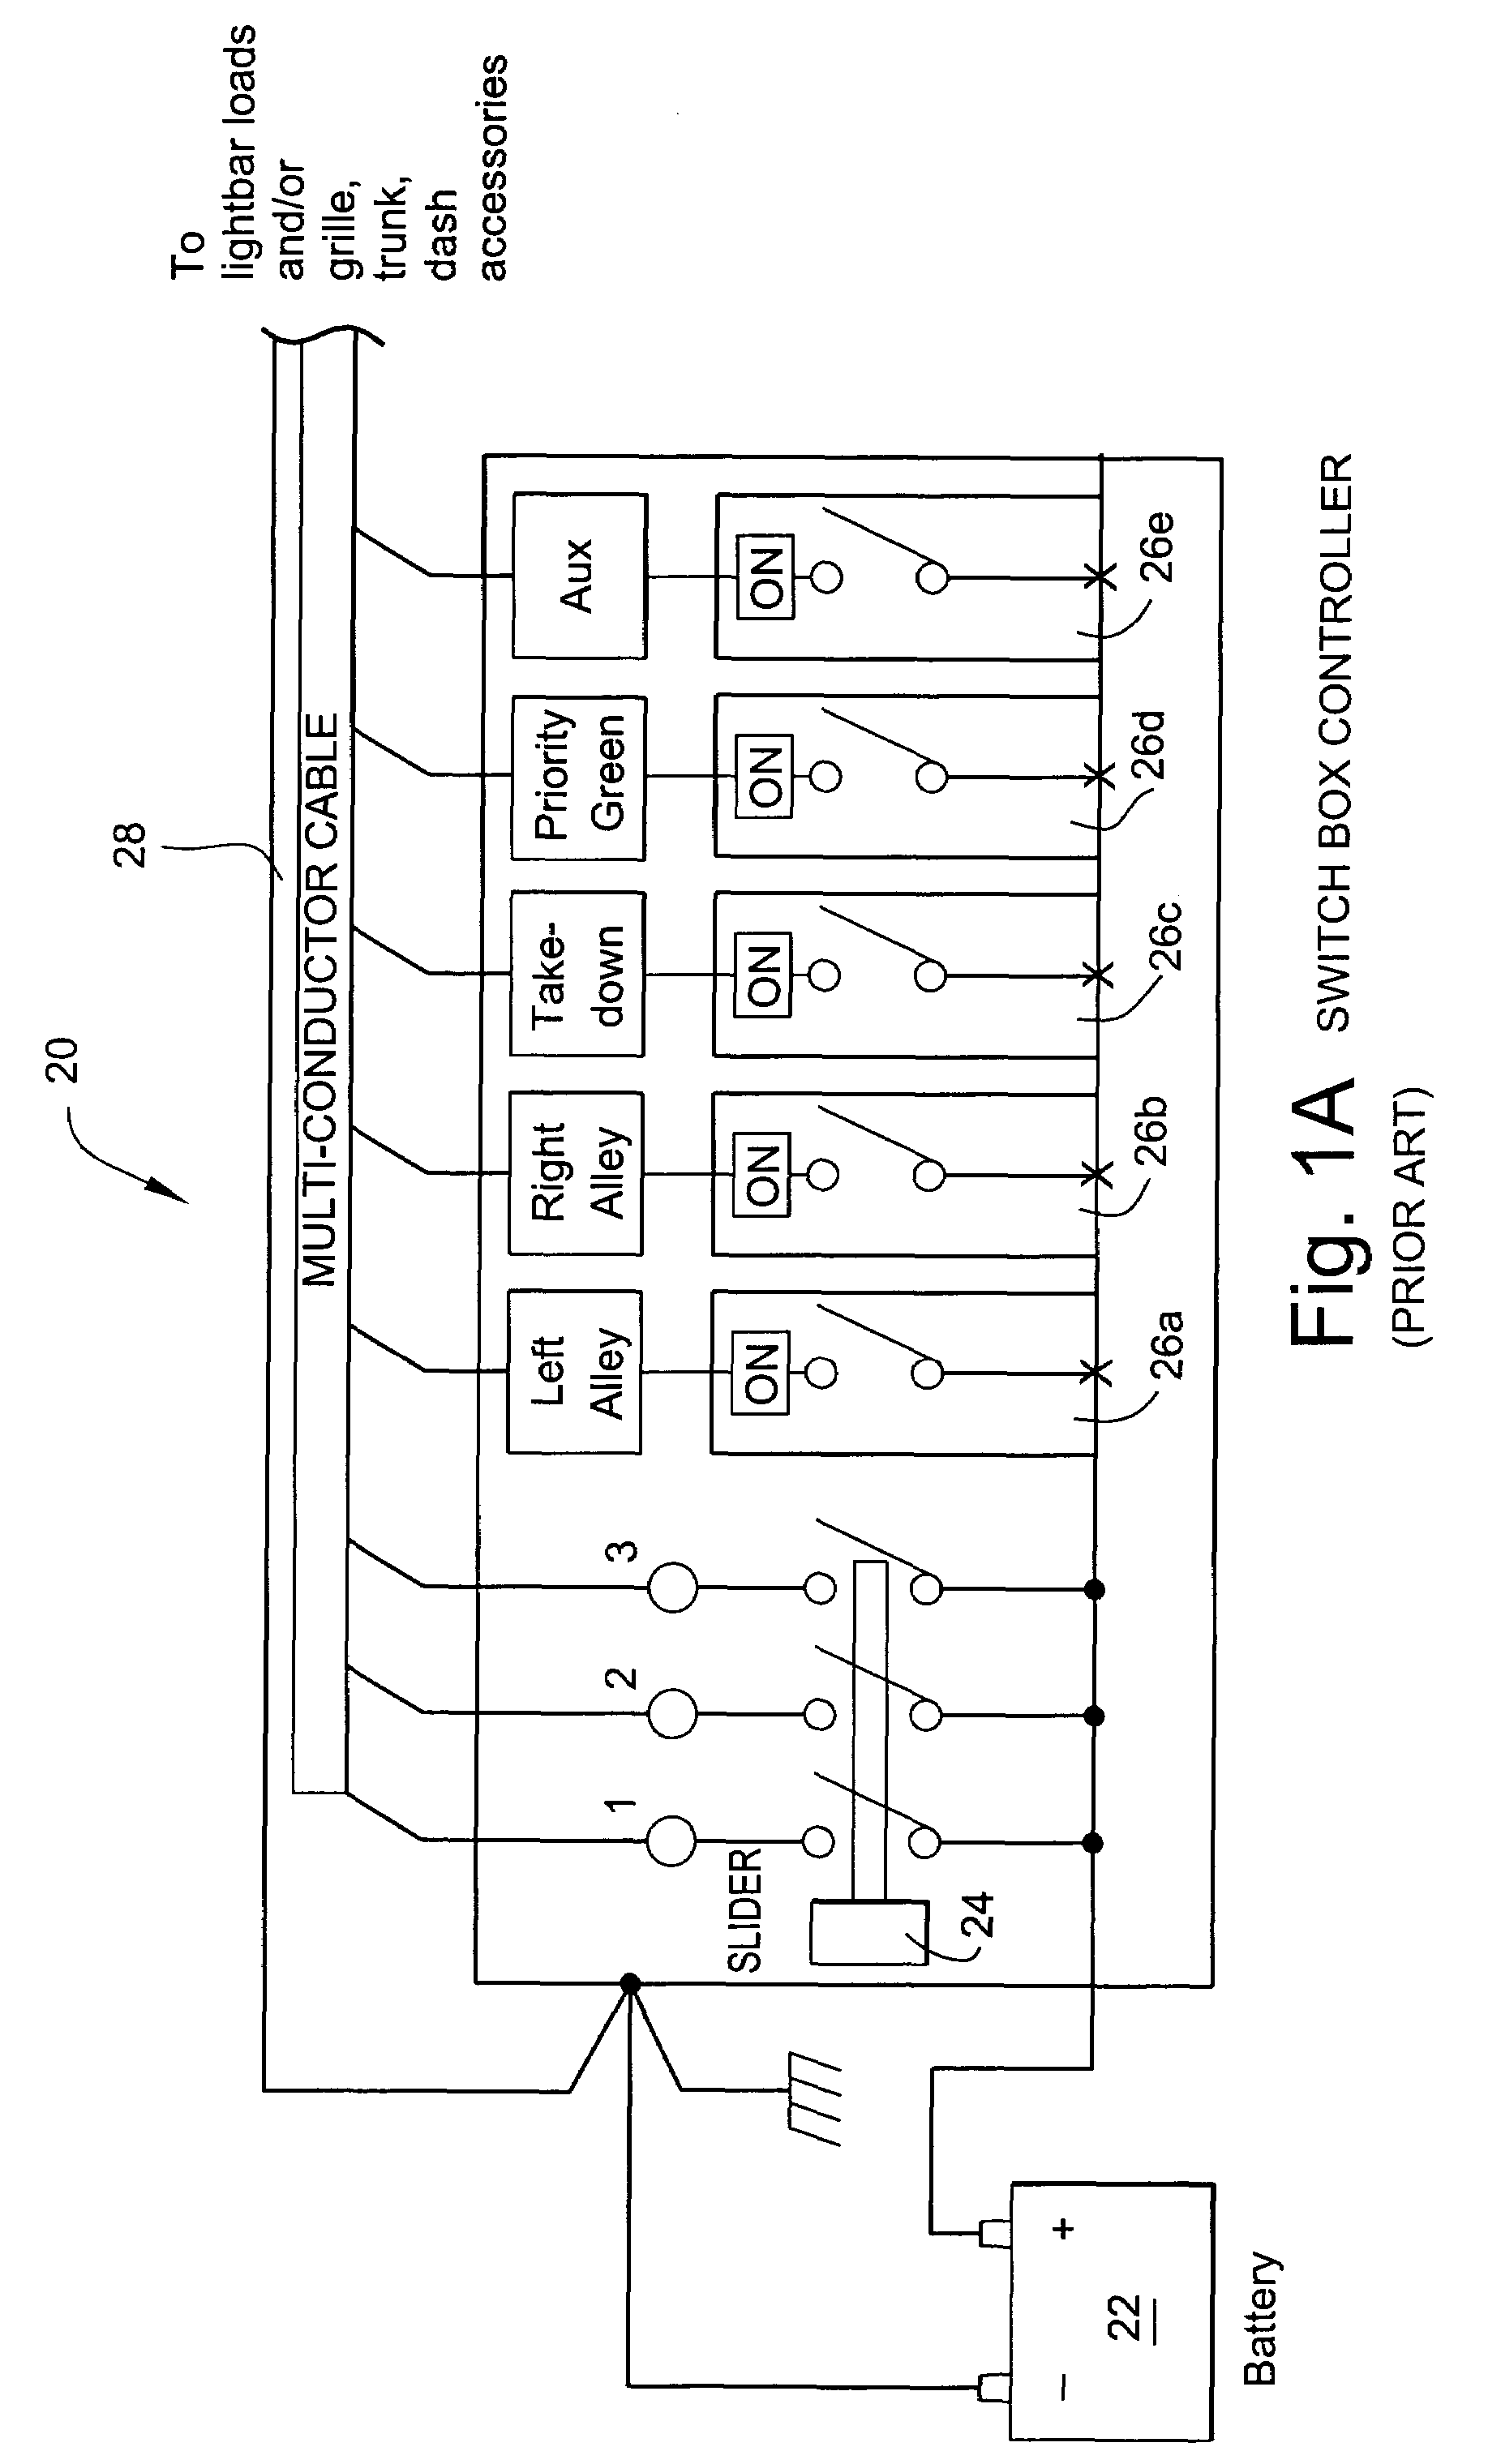 Code 3 2100 Wiring Diagram